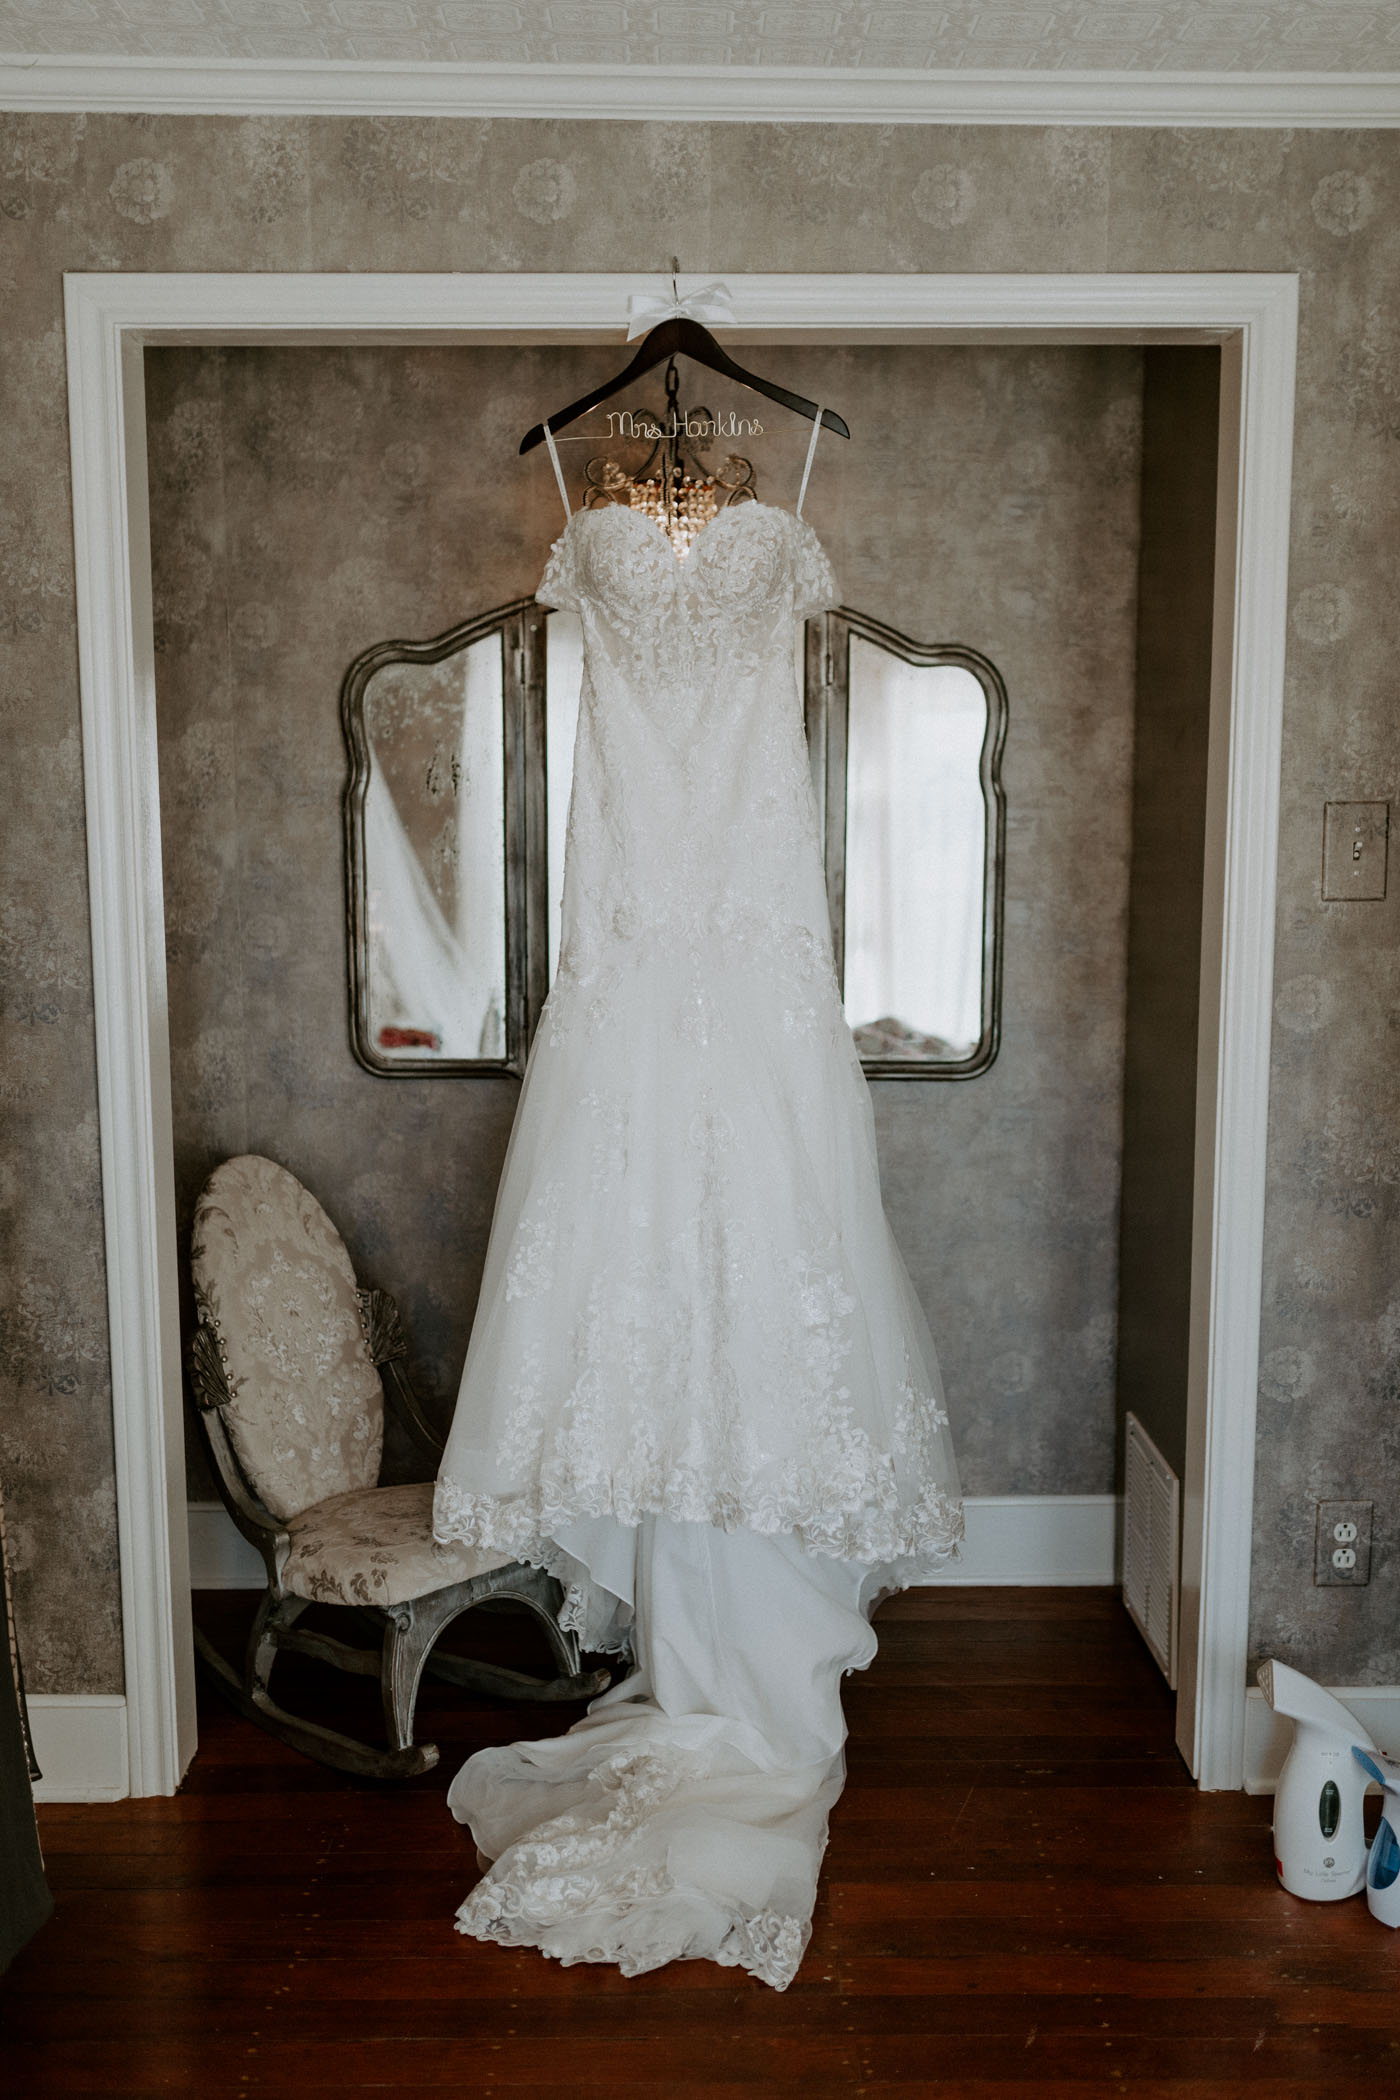 Lace wedding dress hanging in doorway of wedding venue